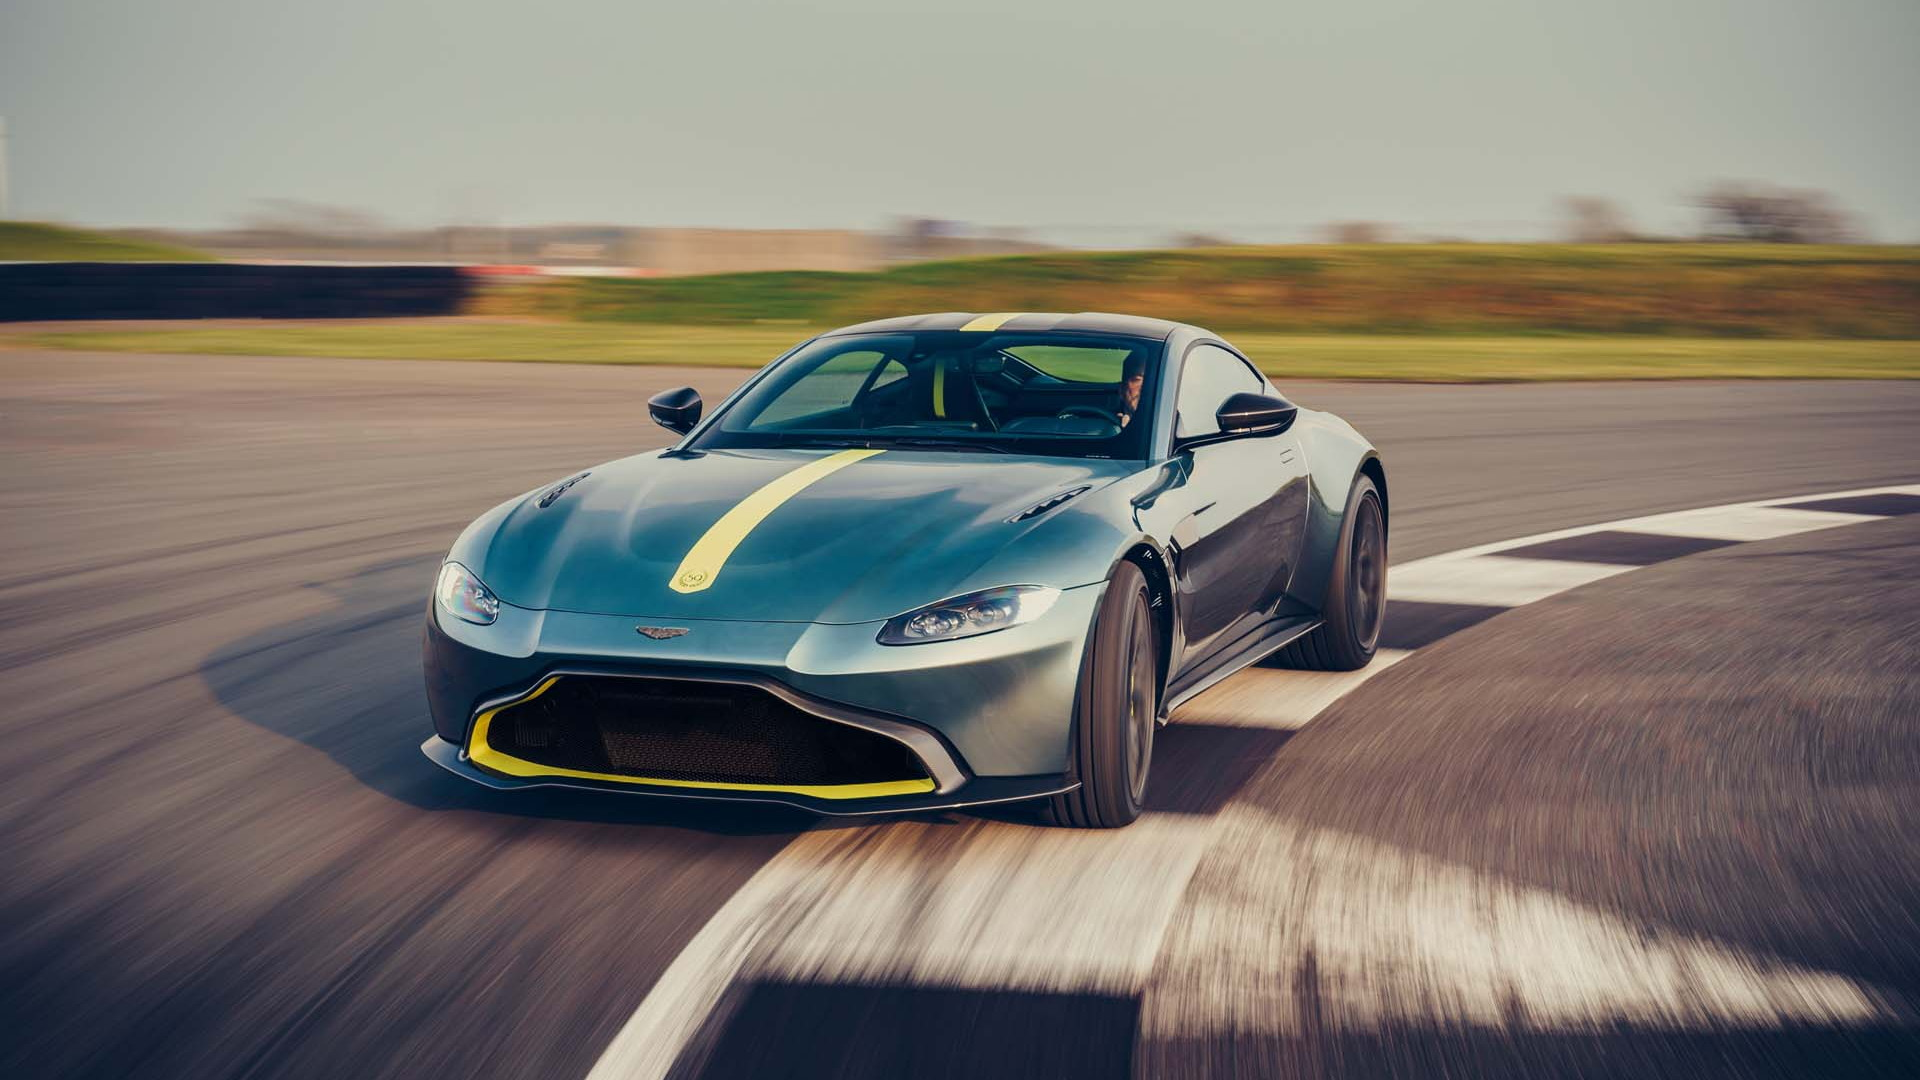 Aston Martin Vantage AMR Gets a Seven-Speed Manual Transmission